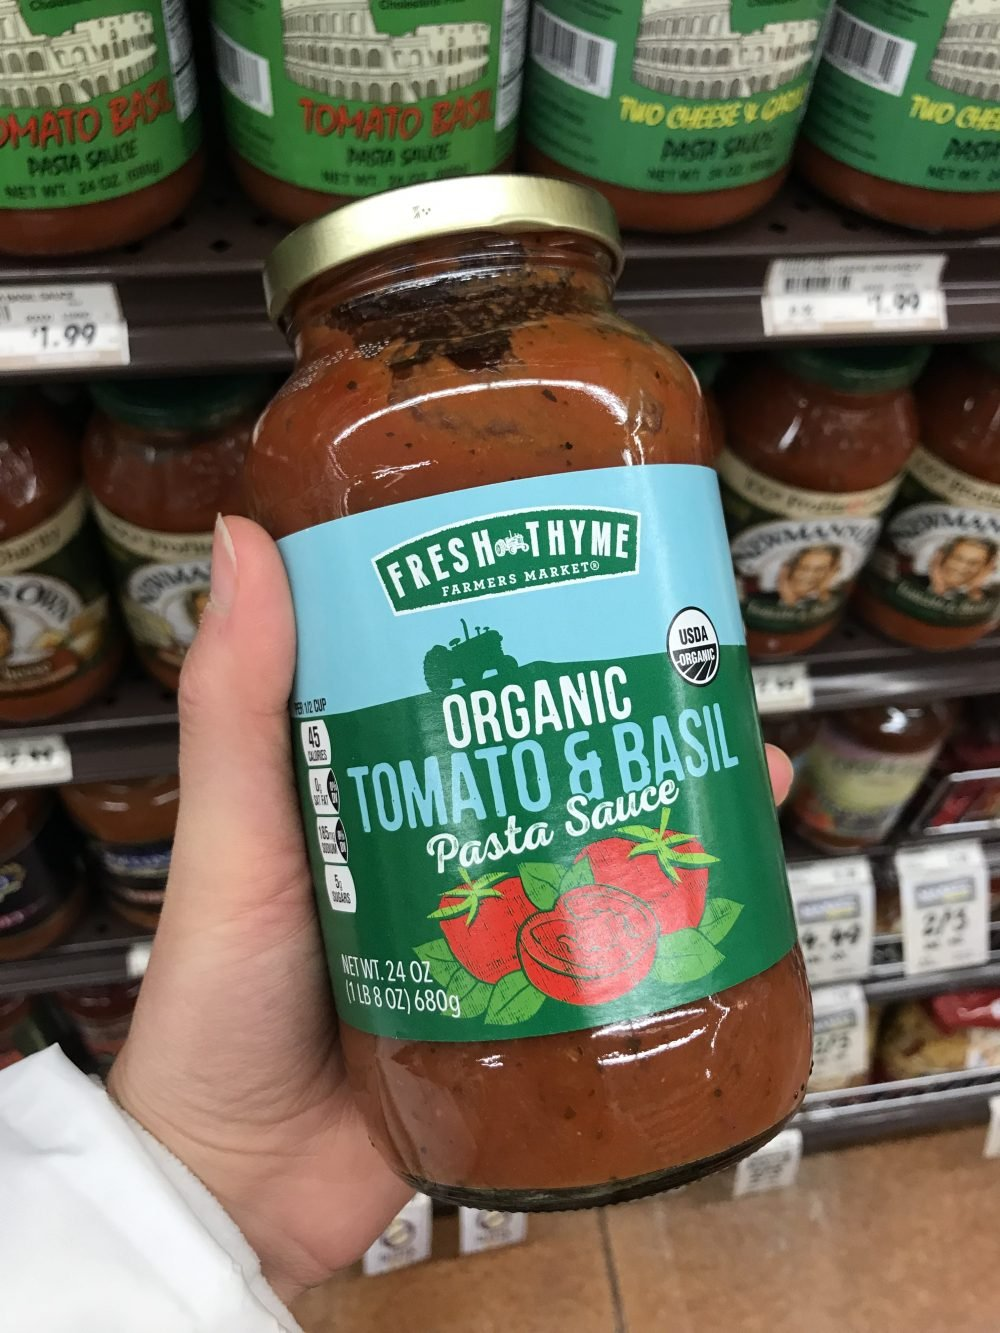 Large jar of tomato sauce